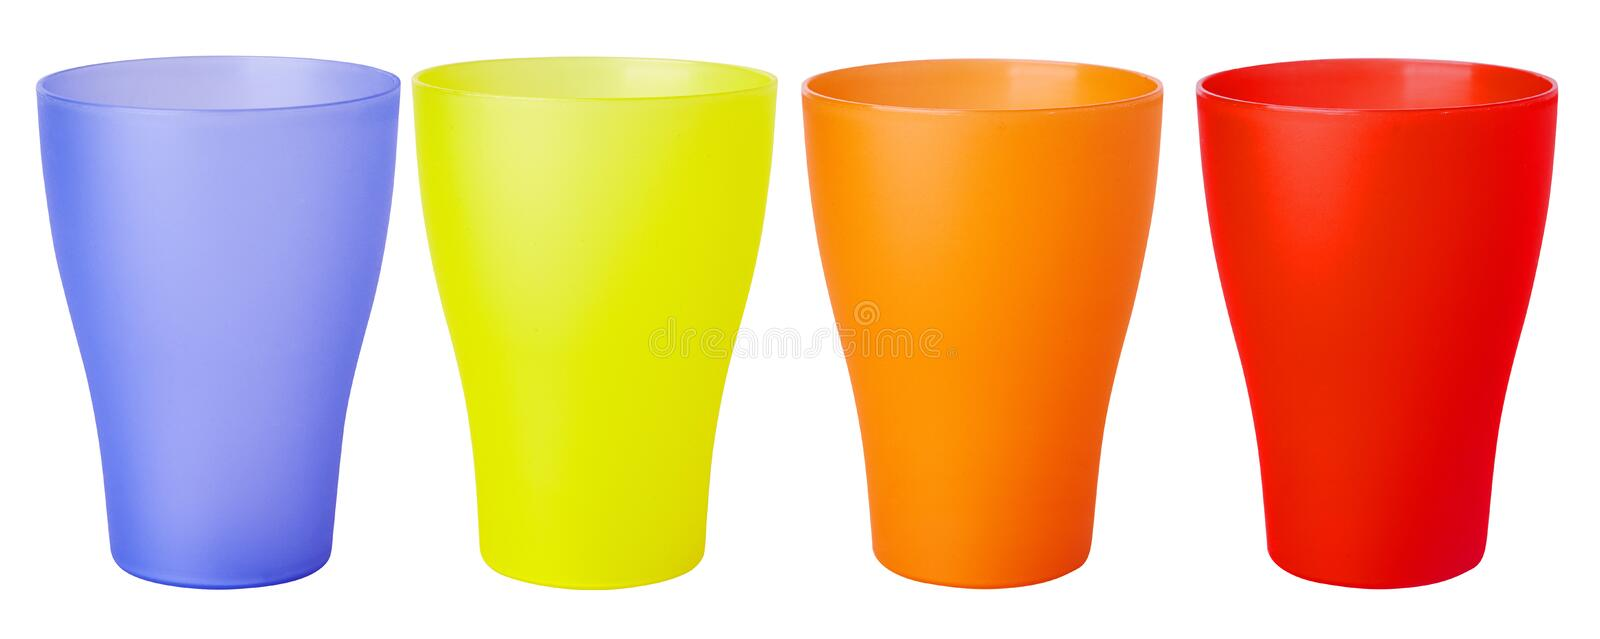 Colorful plastic glass for picnic isolated on white background stock images